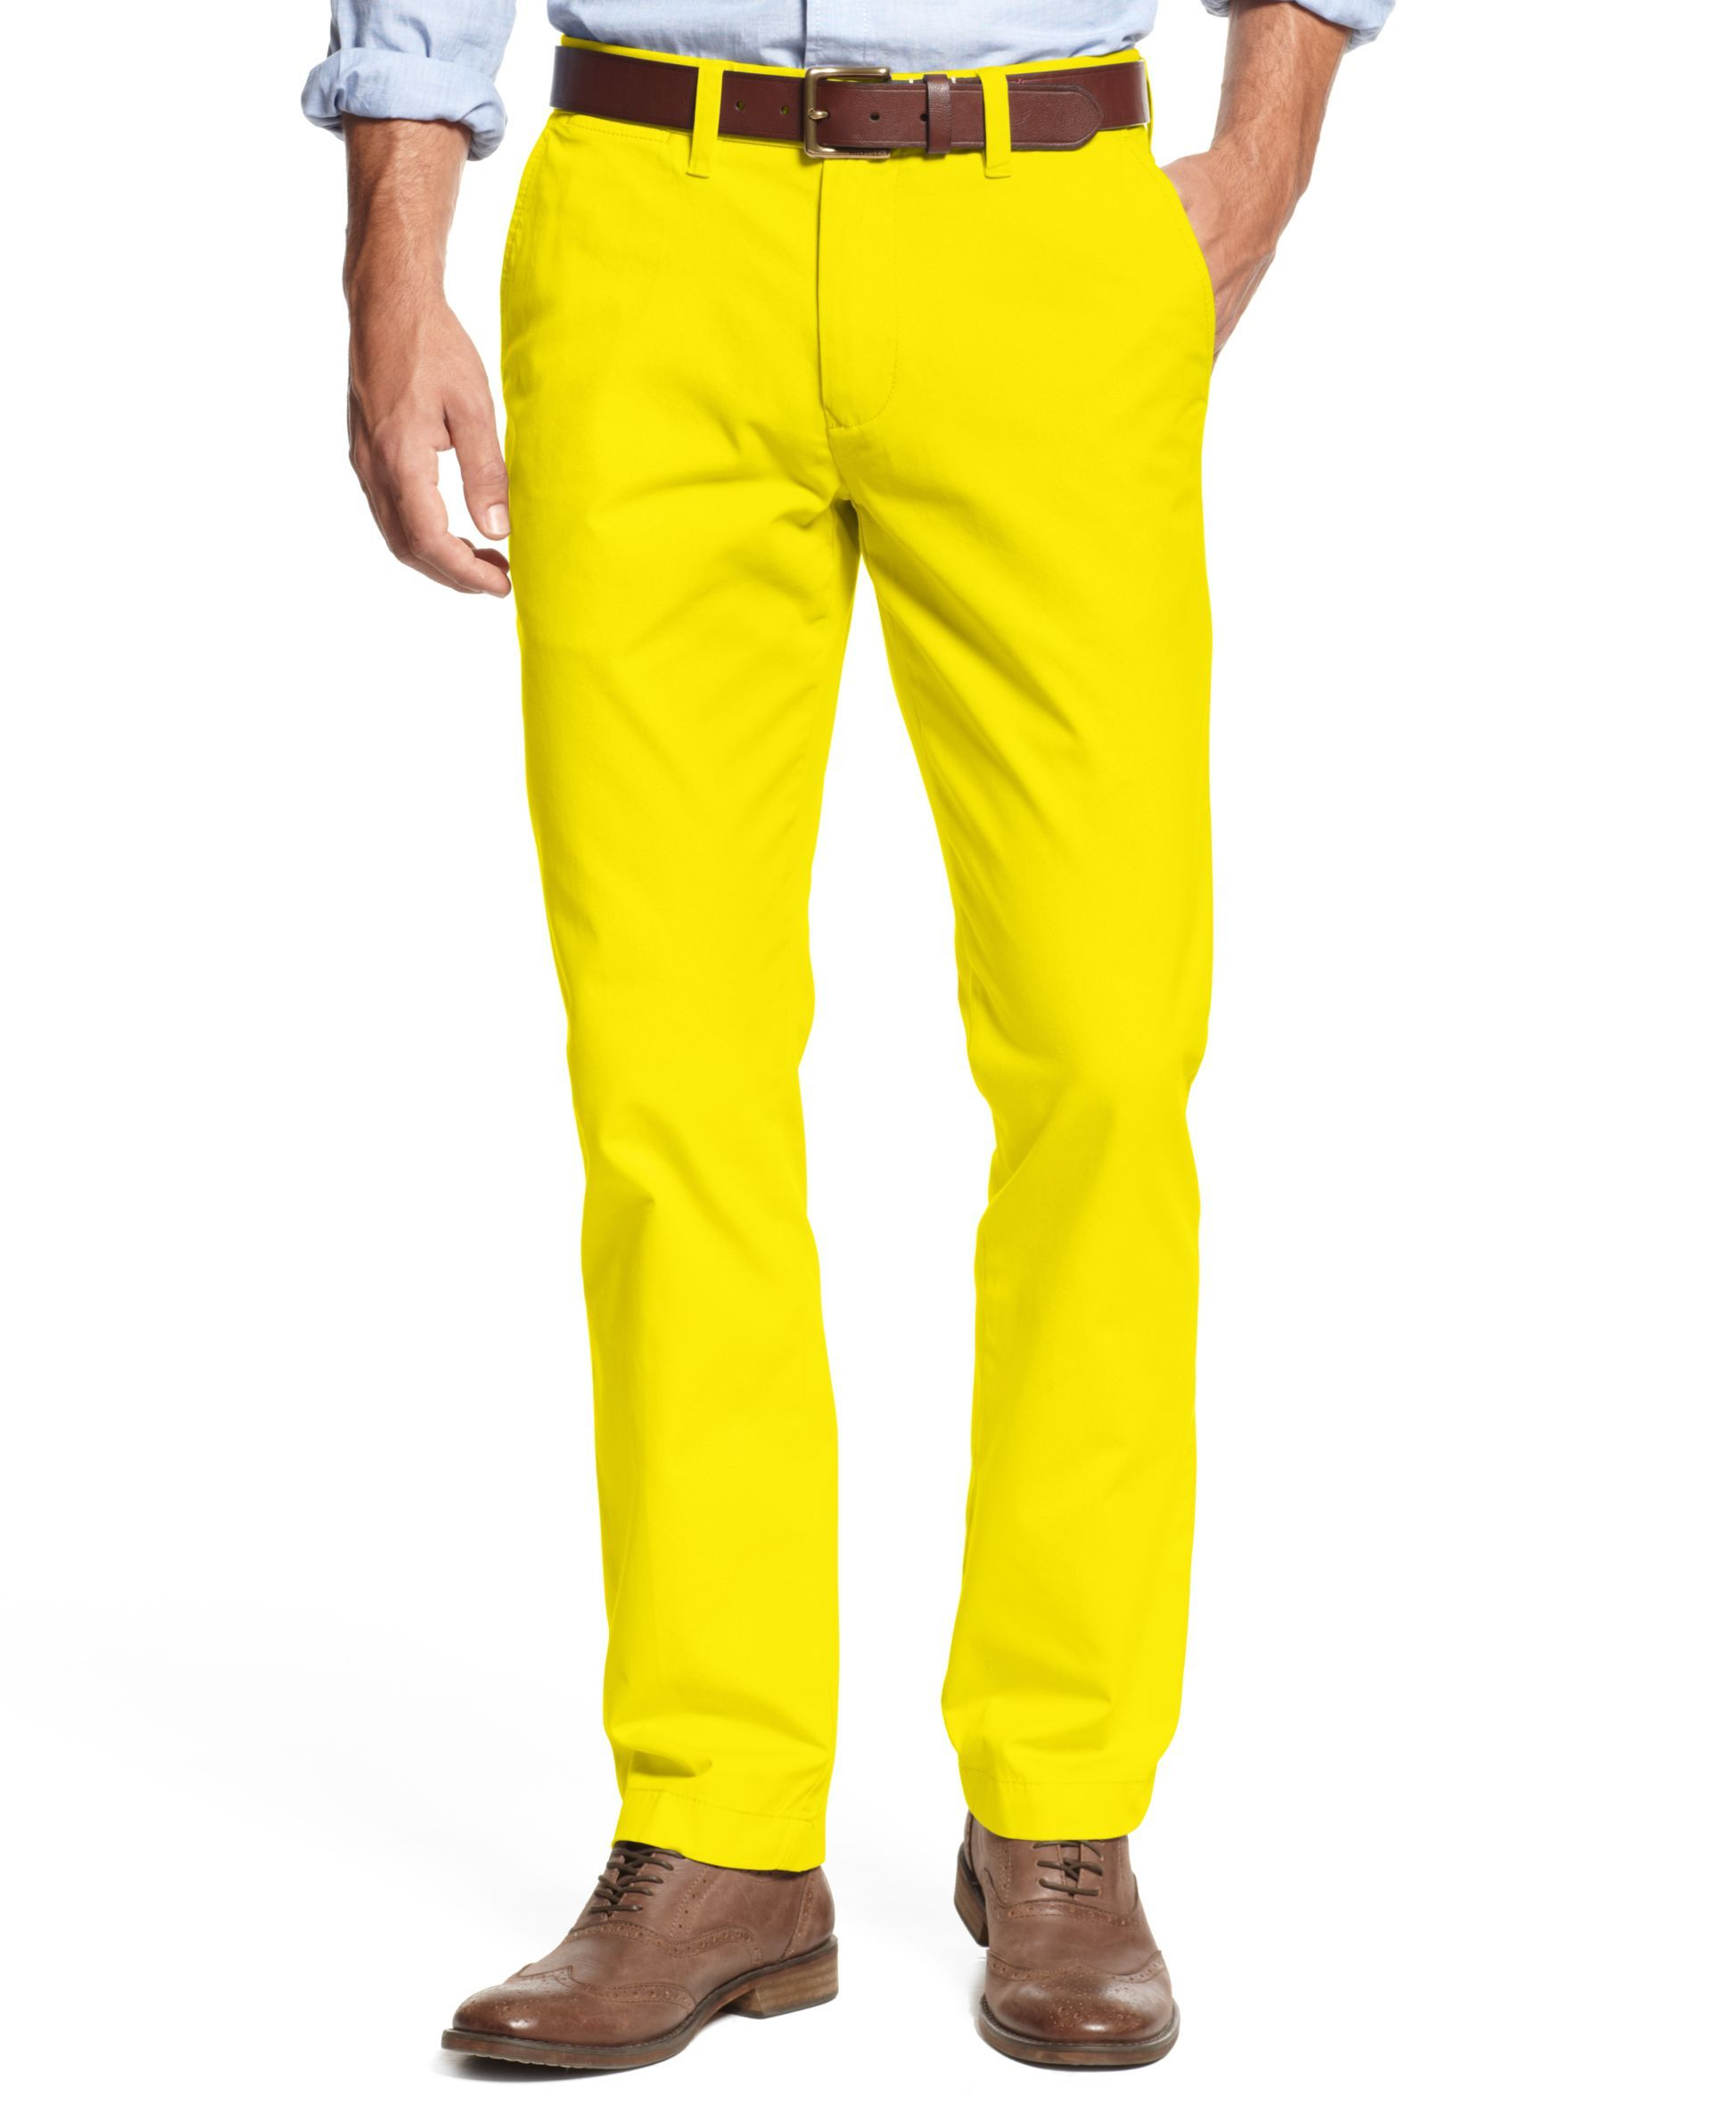 Tommy Hilfiger Mens Custom Fit Low Rise Flat Front Chino